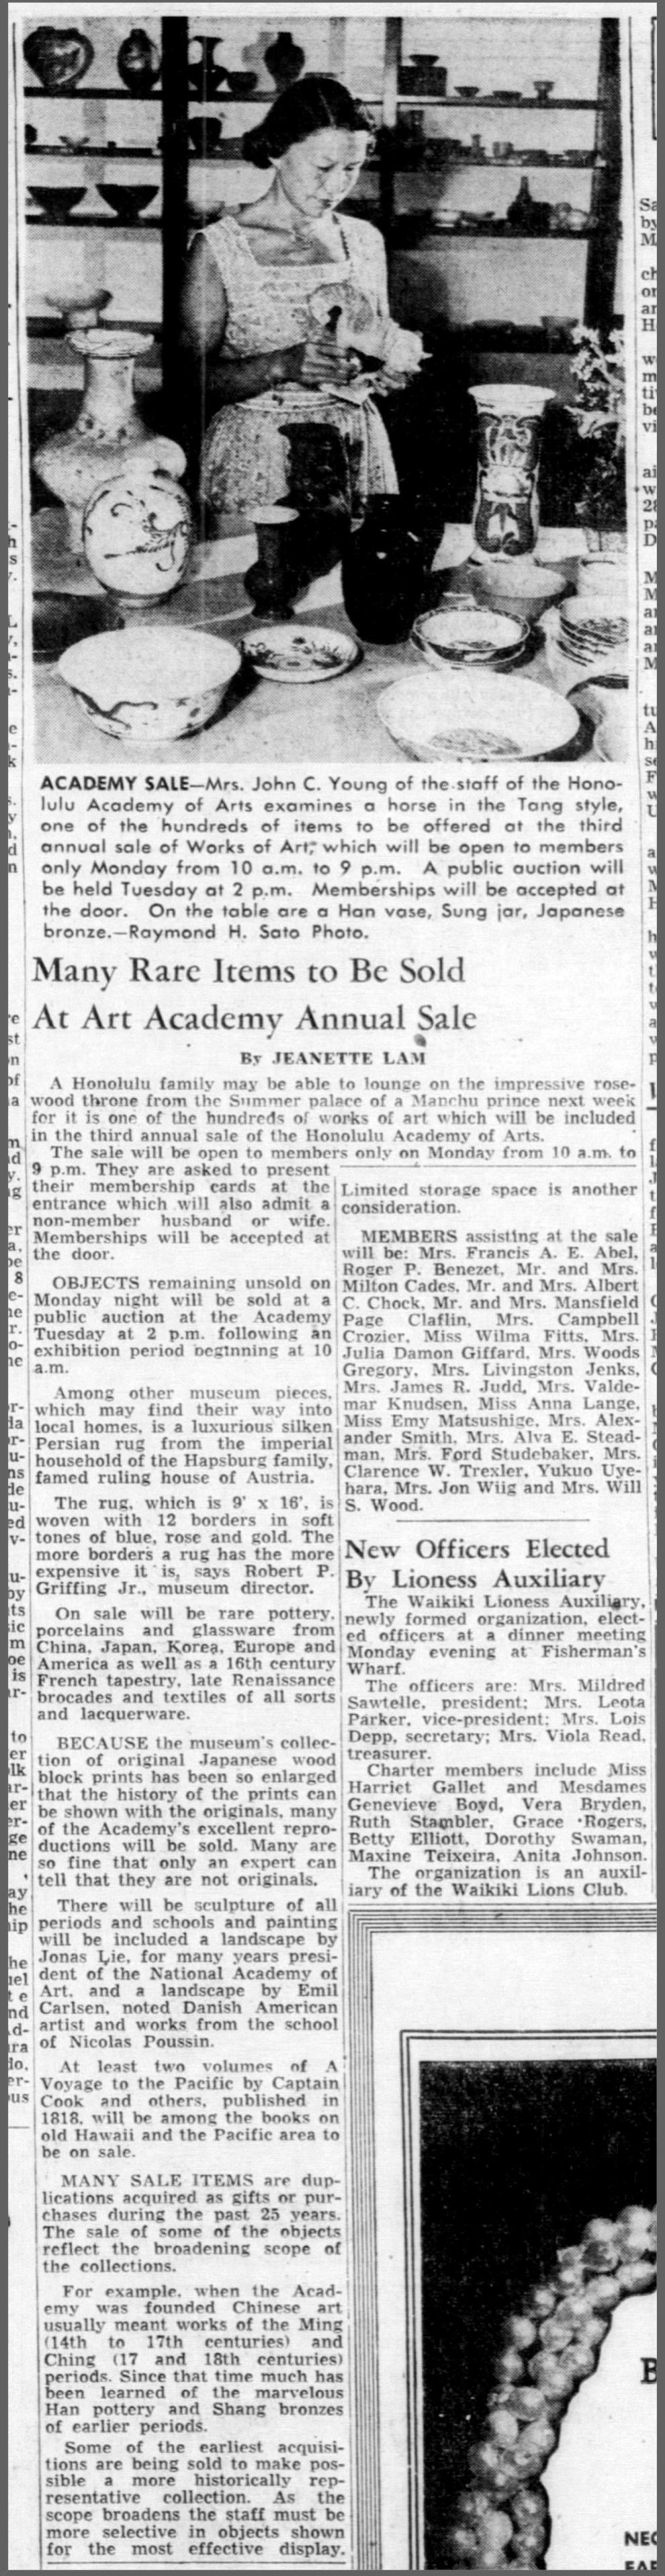 """Honolulu Star-Bulletin, Honolulu, HI, """"Many rare items to be sold at art academy annual sale"""" by Jeanette Lam, Friday, October 9, 1953, page 15, not illustrated"""